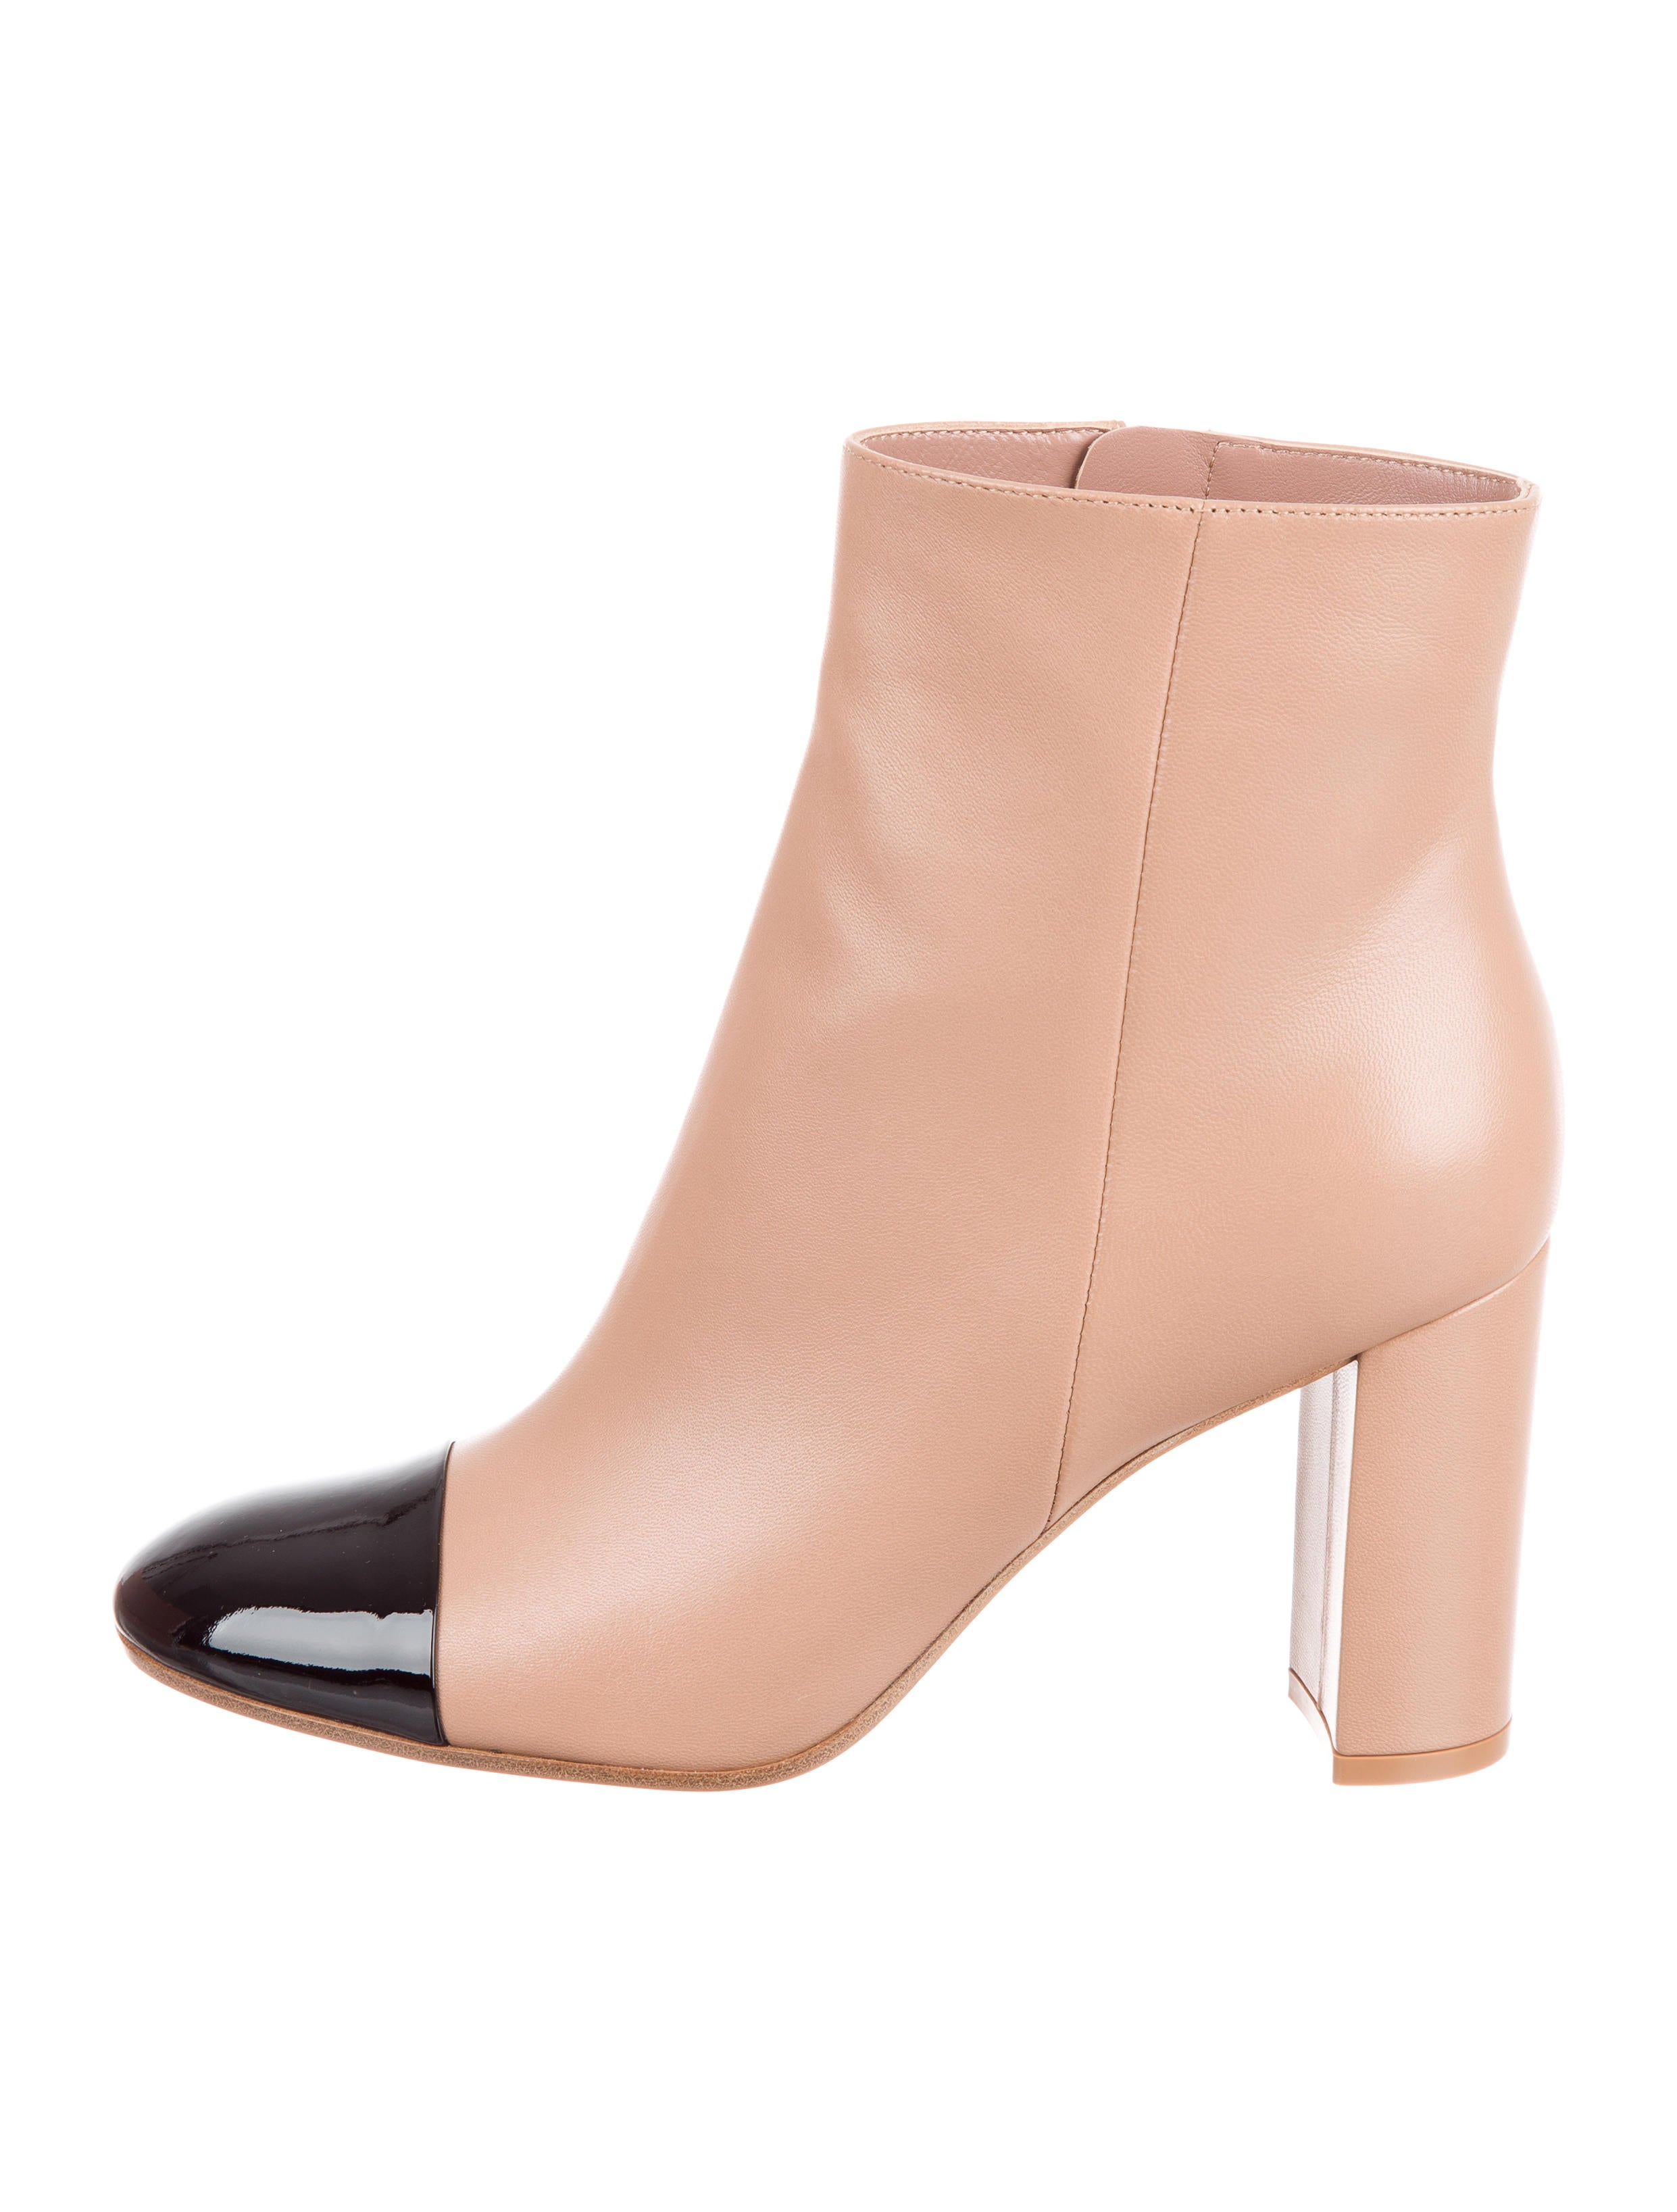 Gianvito Rossi Cap-Toe Ankle Boots w/ Tags cheap price low shipping fee buy cheap countdown package collections cheap online I6wUG2k